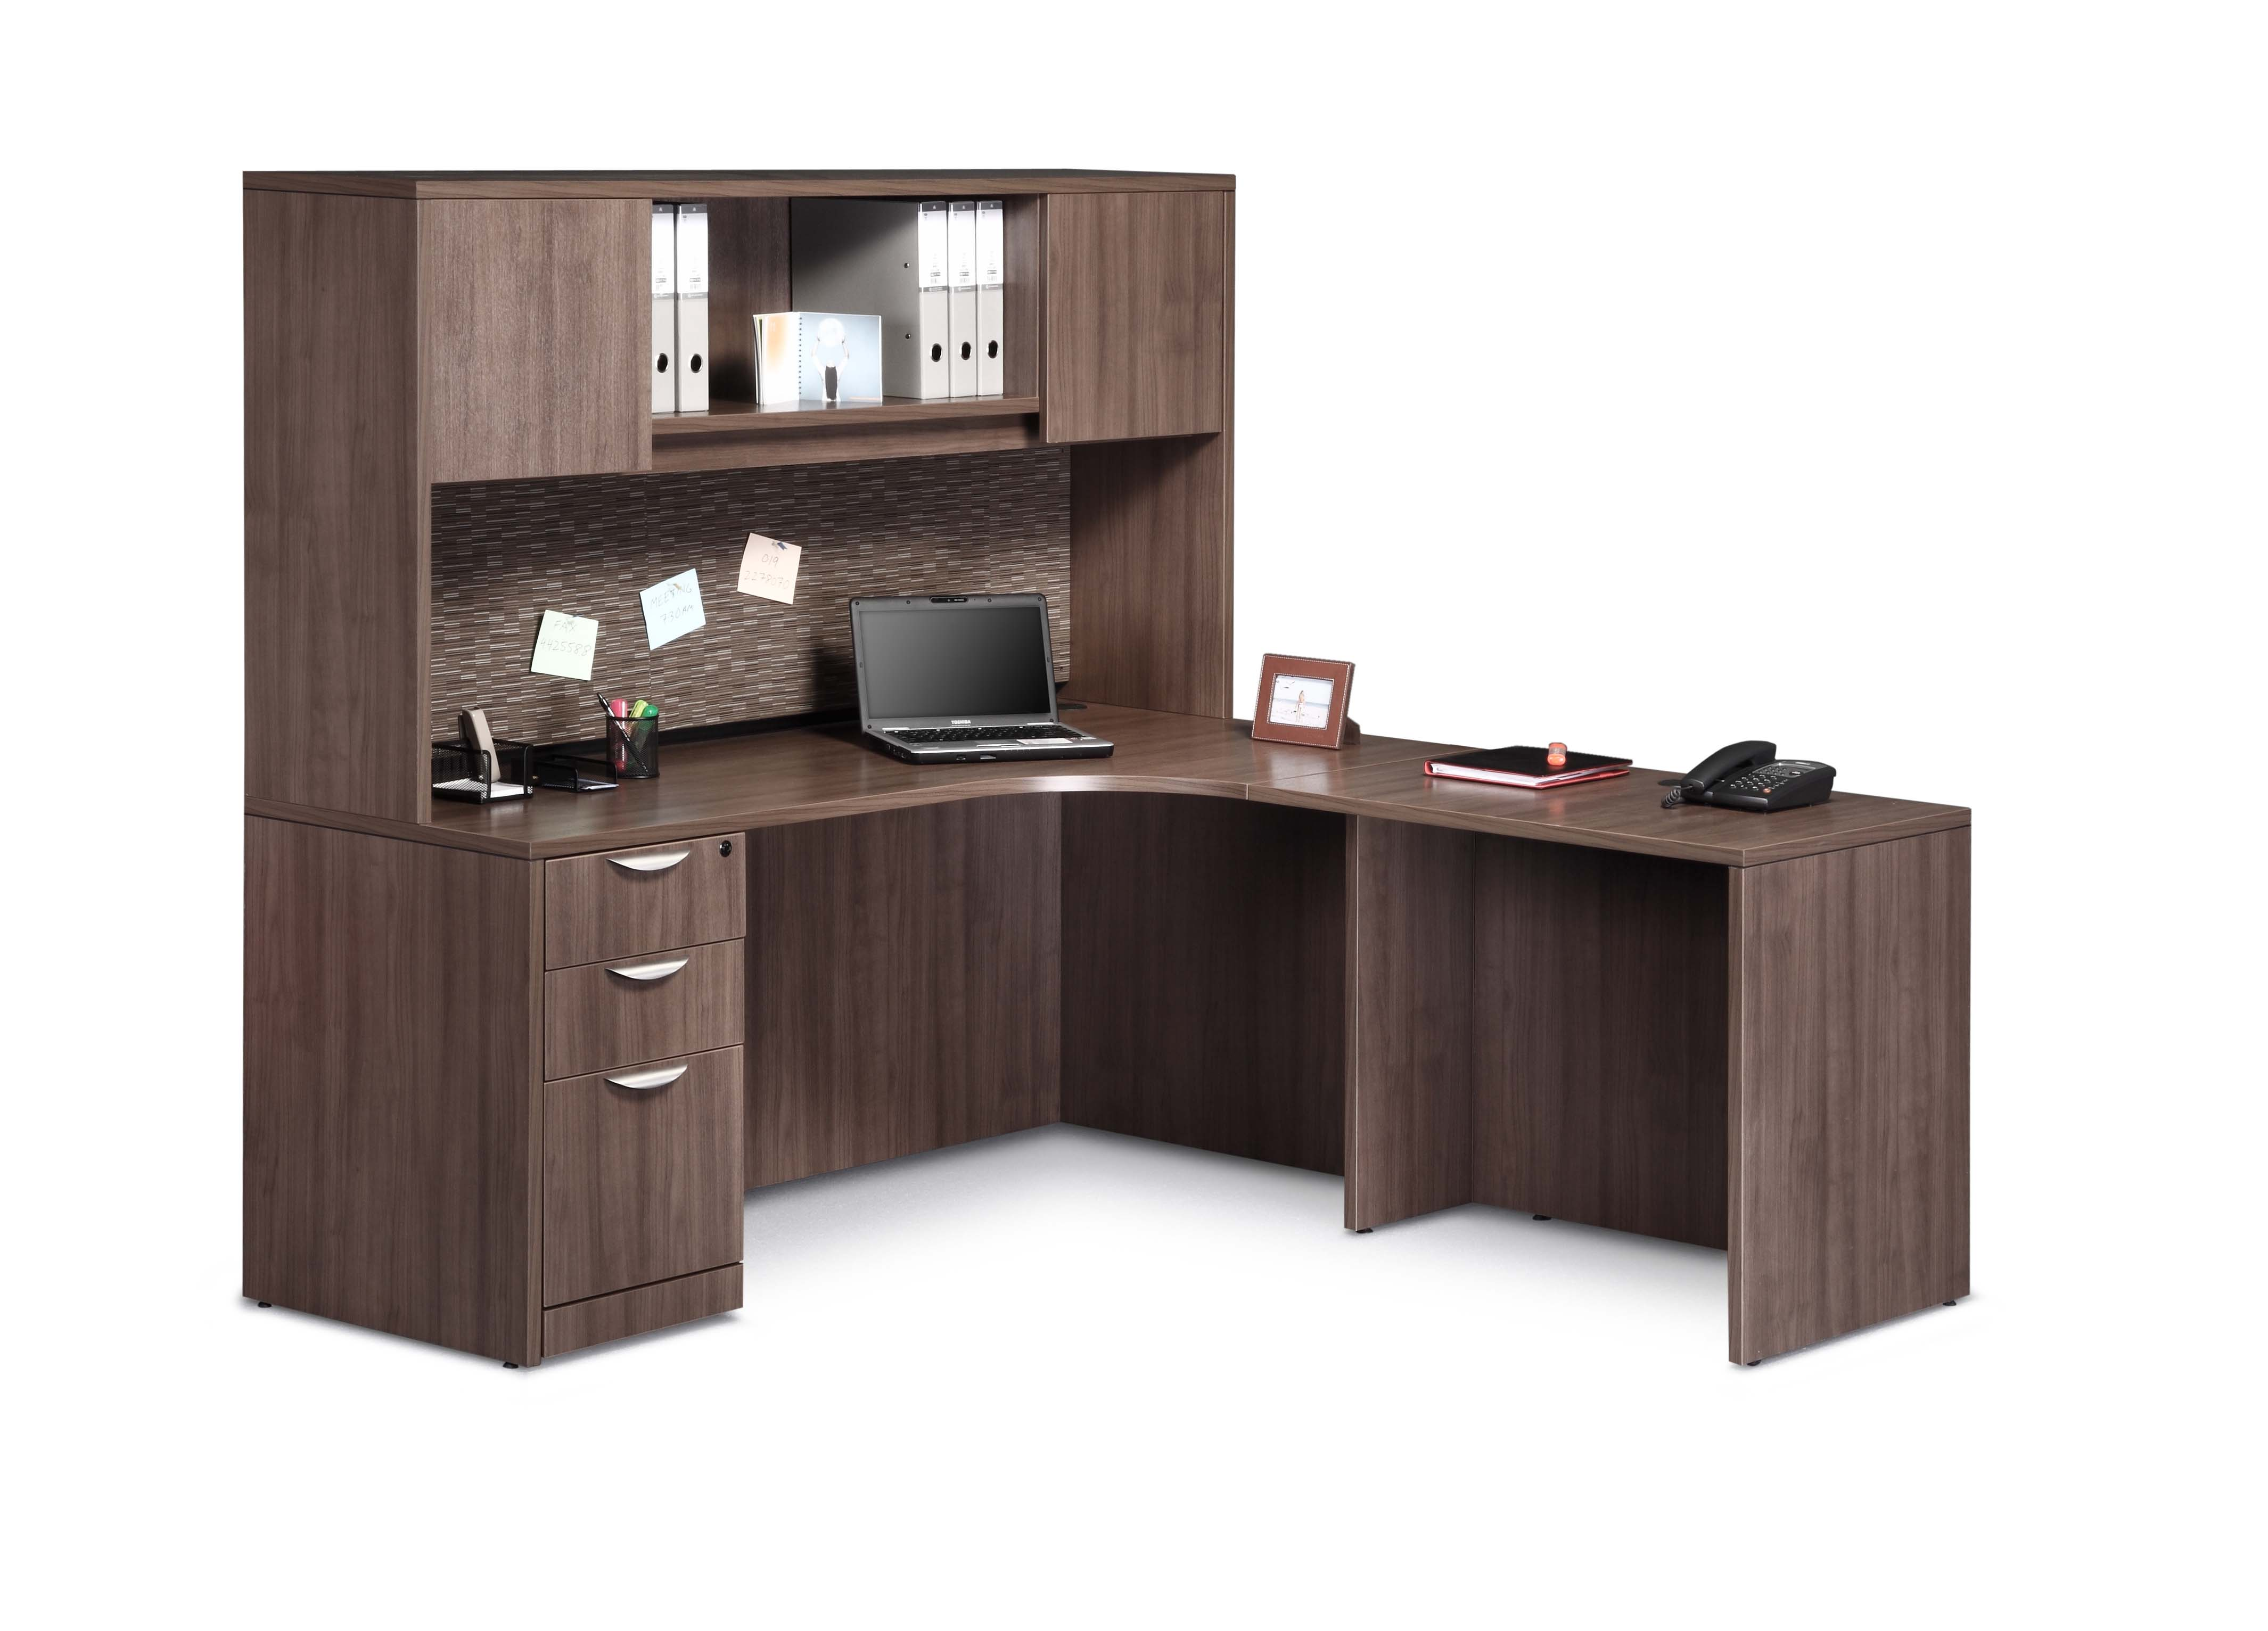 31 Pl Workstation L Single Ped With Inside Curve And